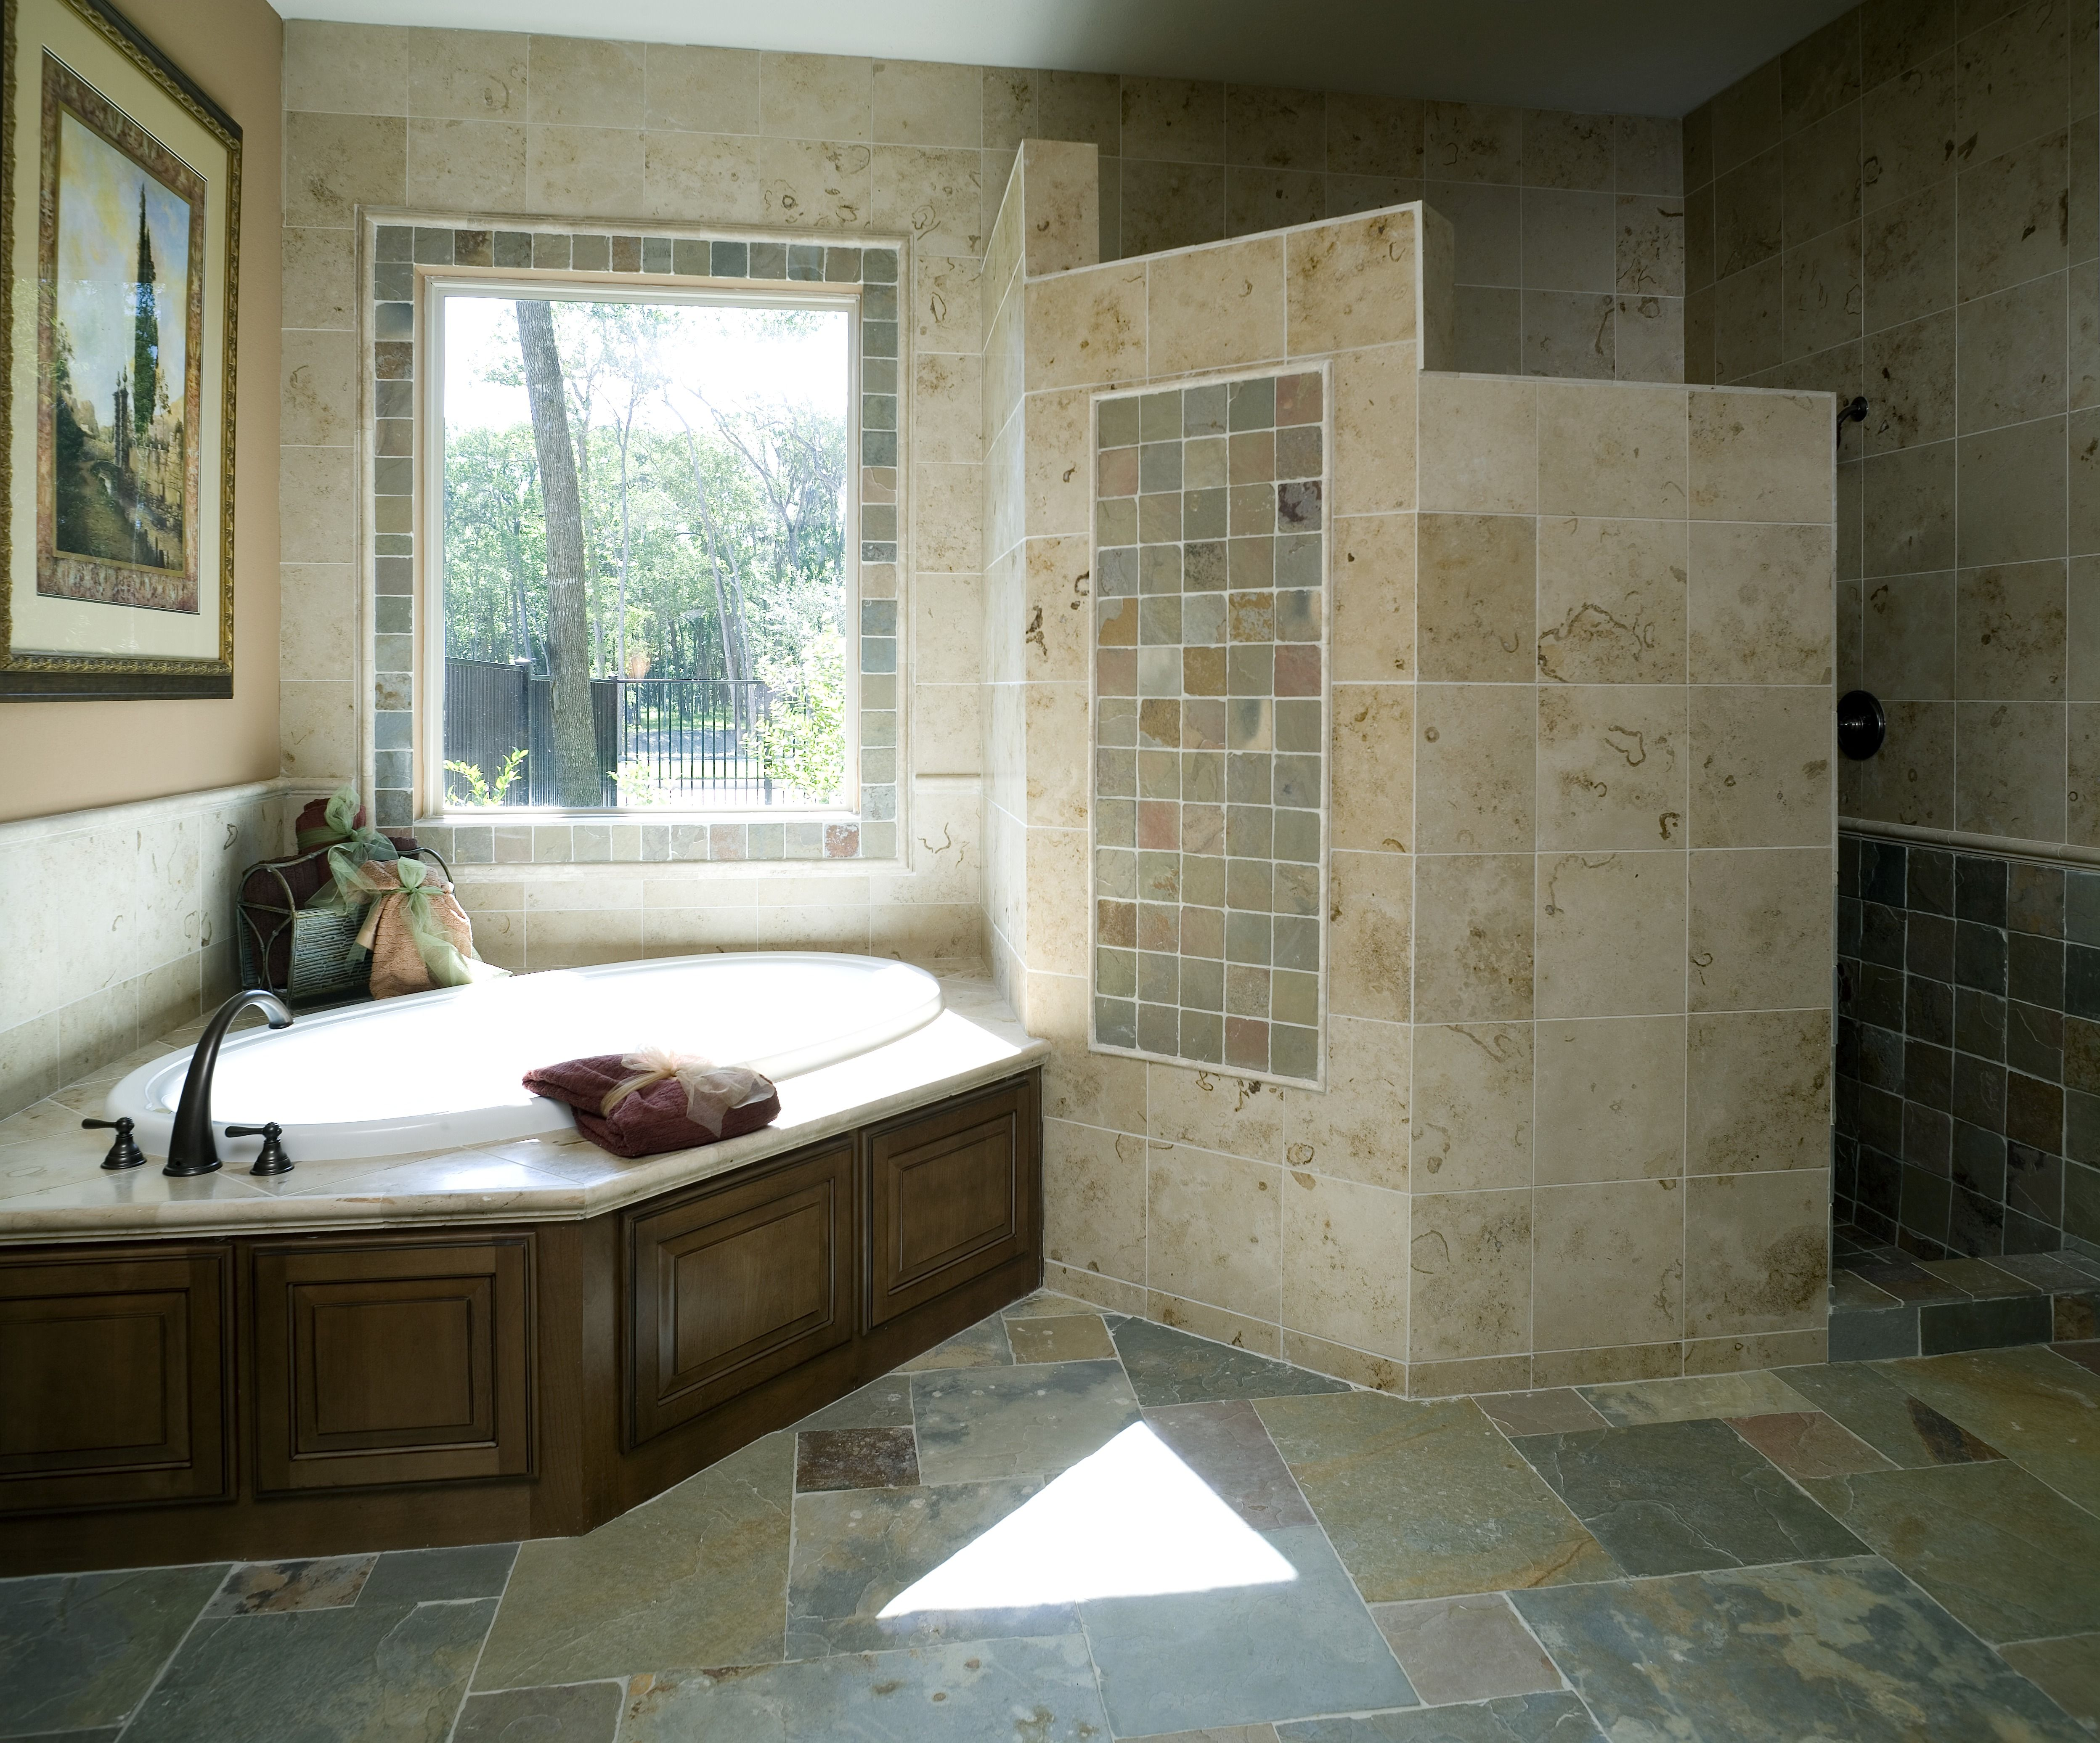 Corner Tubs With A Stoned Shower To Give Any Couple The Privacy They Desire Stone Matches Rest Of Bathroom Theme Stoneshower Cornertub